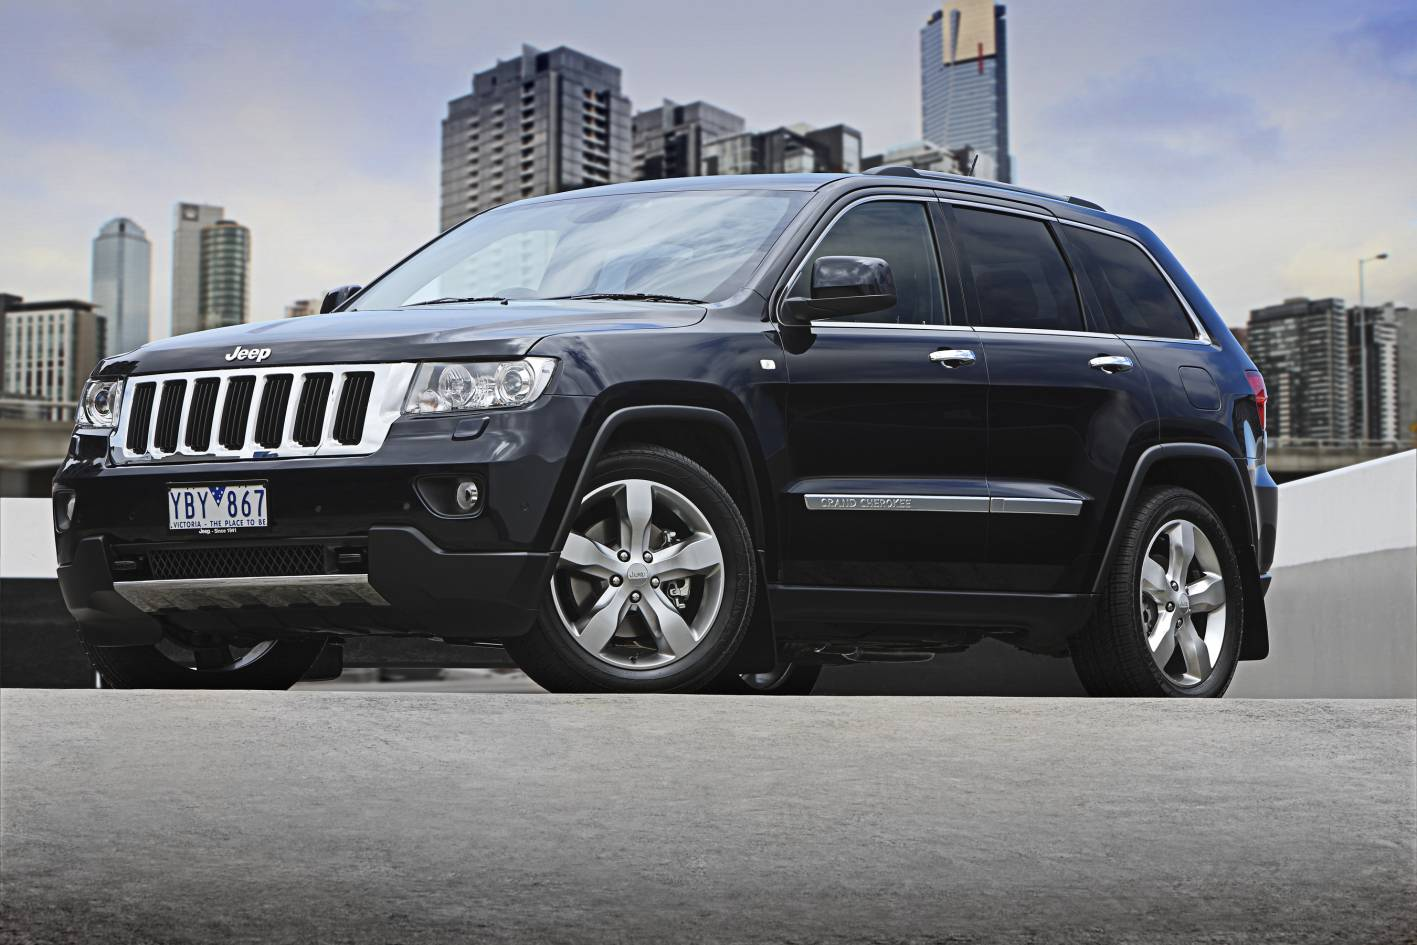 2011_jeep_grand_cherokee_limited_australia_05